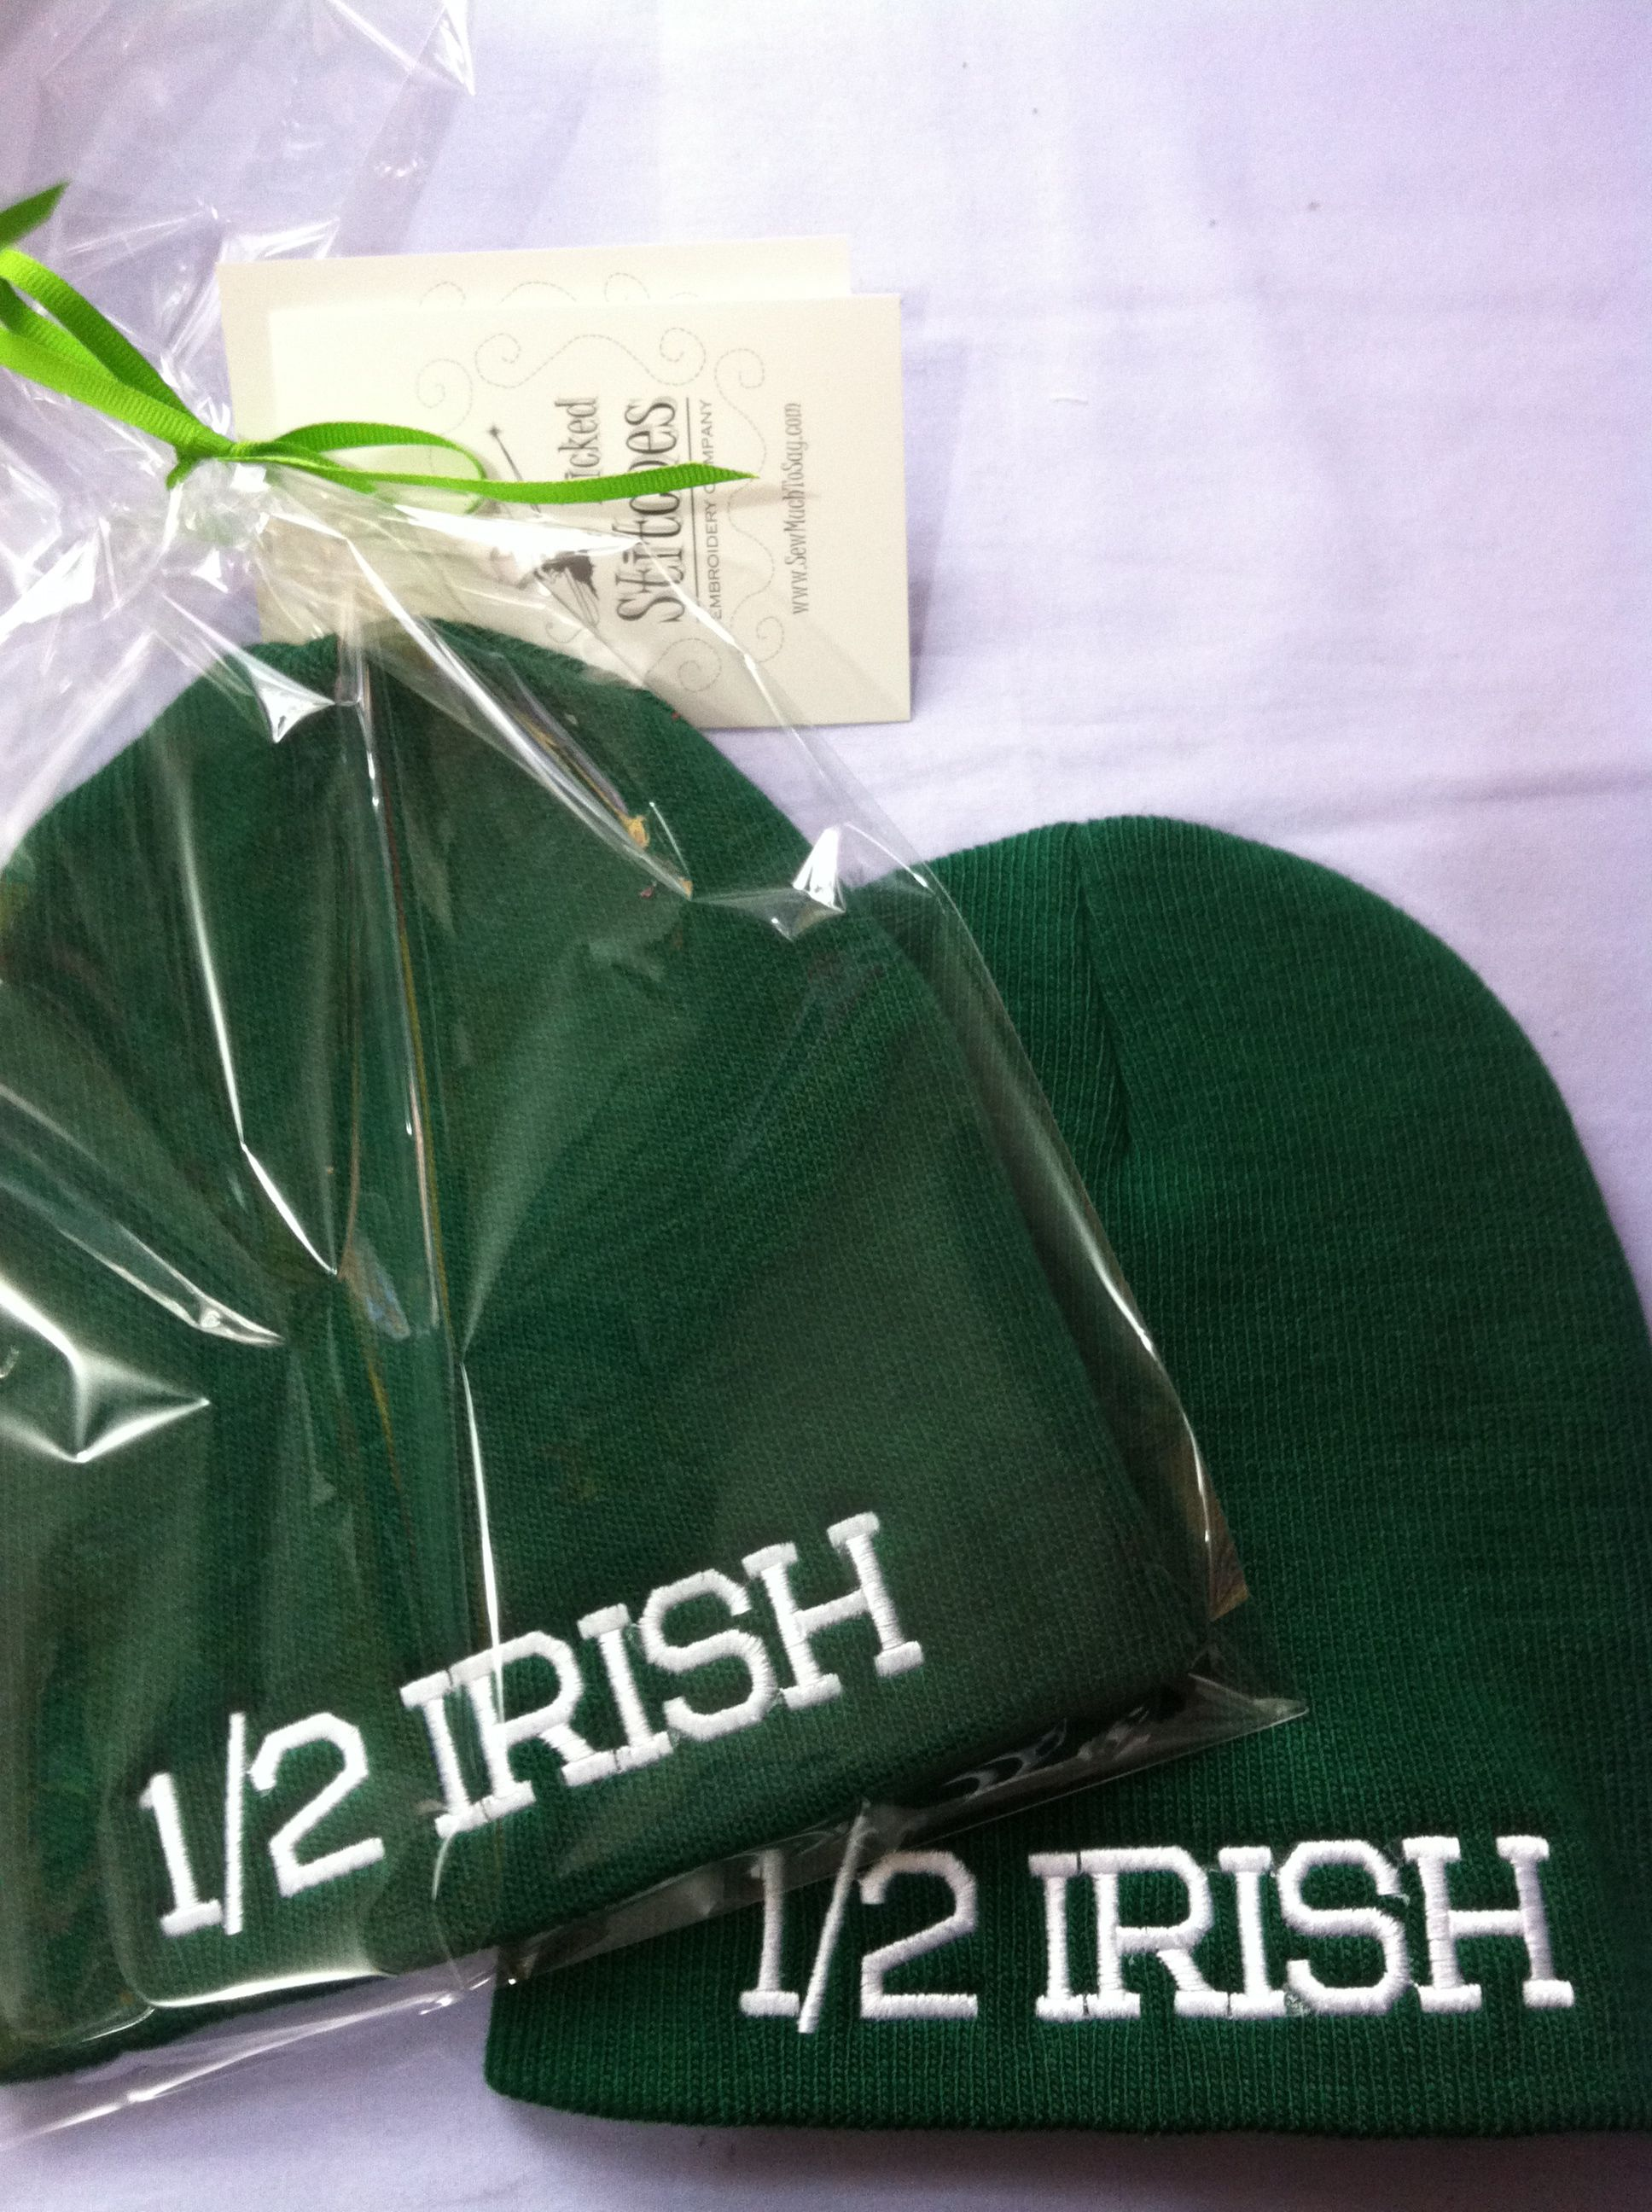 #Custom #embroidered 1/2 #irish #hats, perfect for St. Patrick's Day! By #WickedStitchesGifts